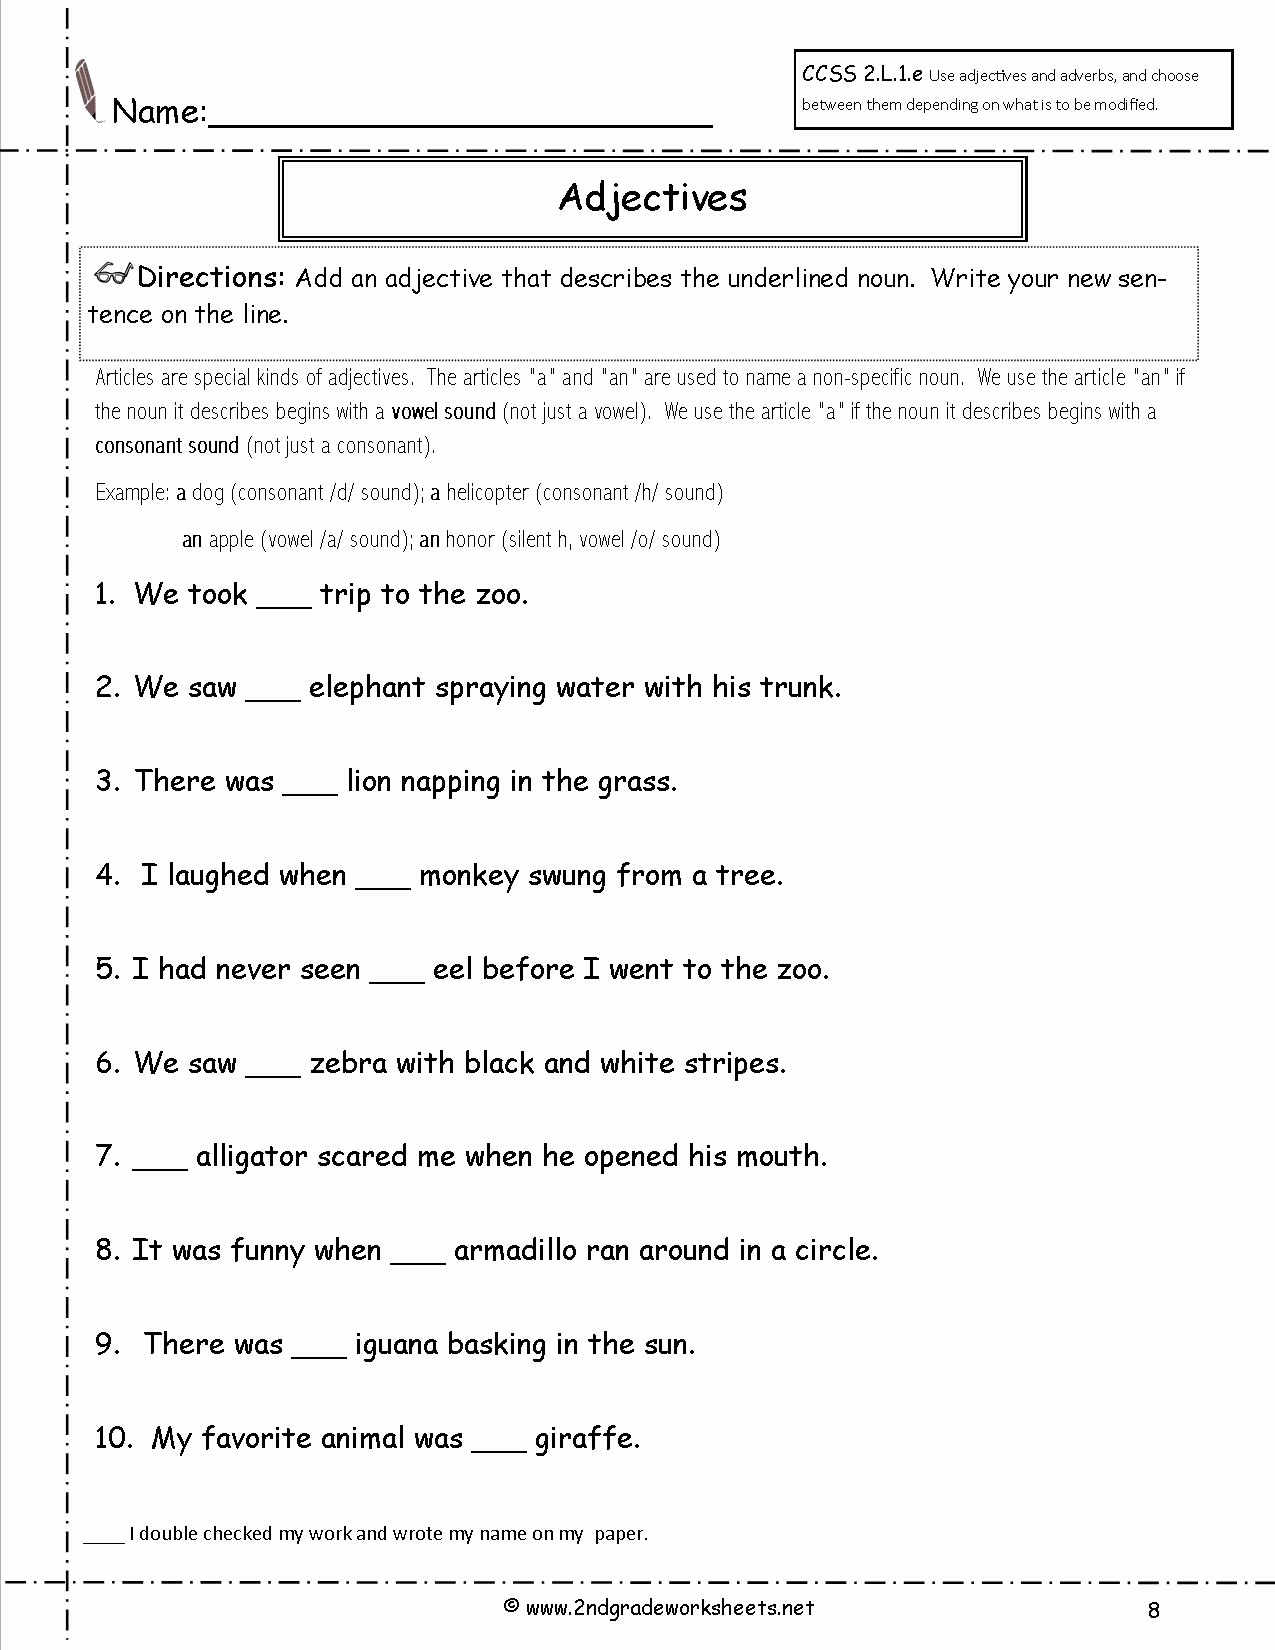 2nd Grade Grammar Worksheets Free Luxury Free Printable Grammar Worksheets for 2nd Grade